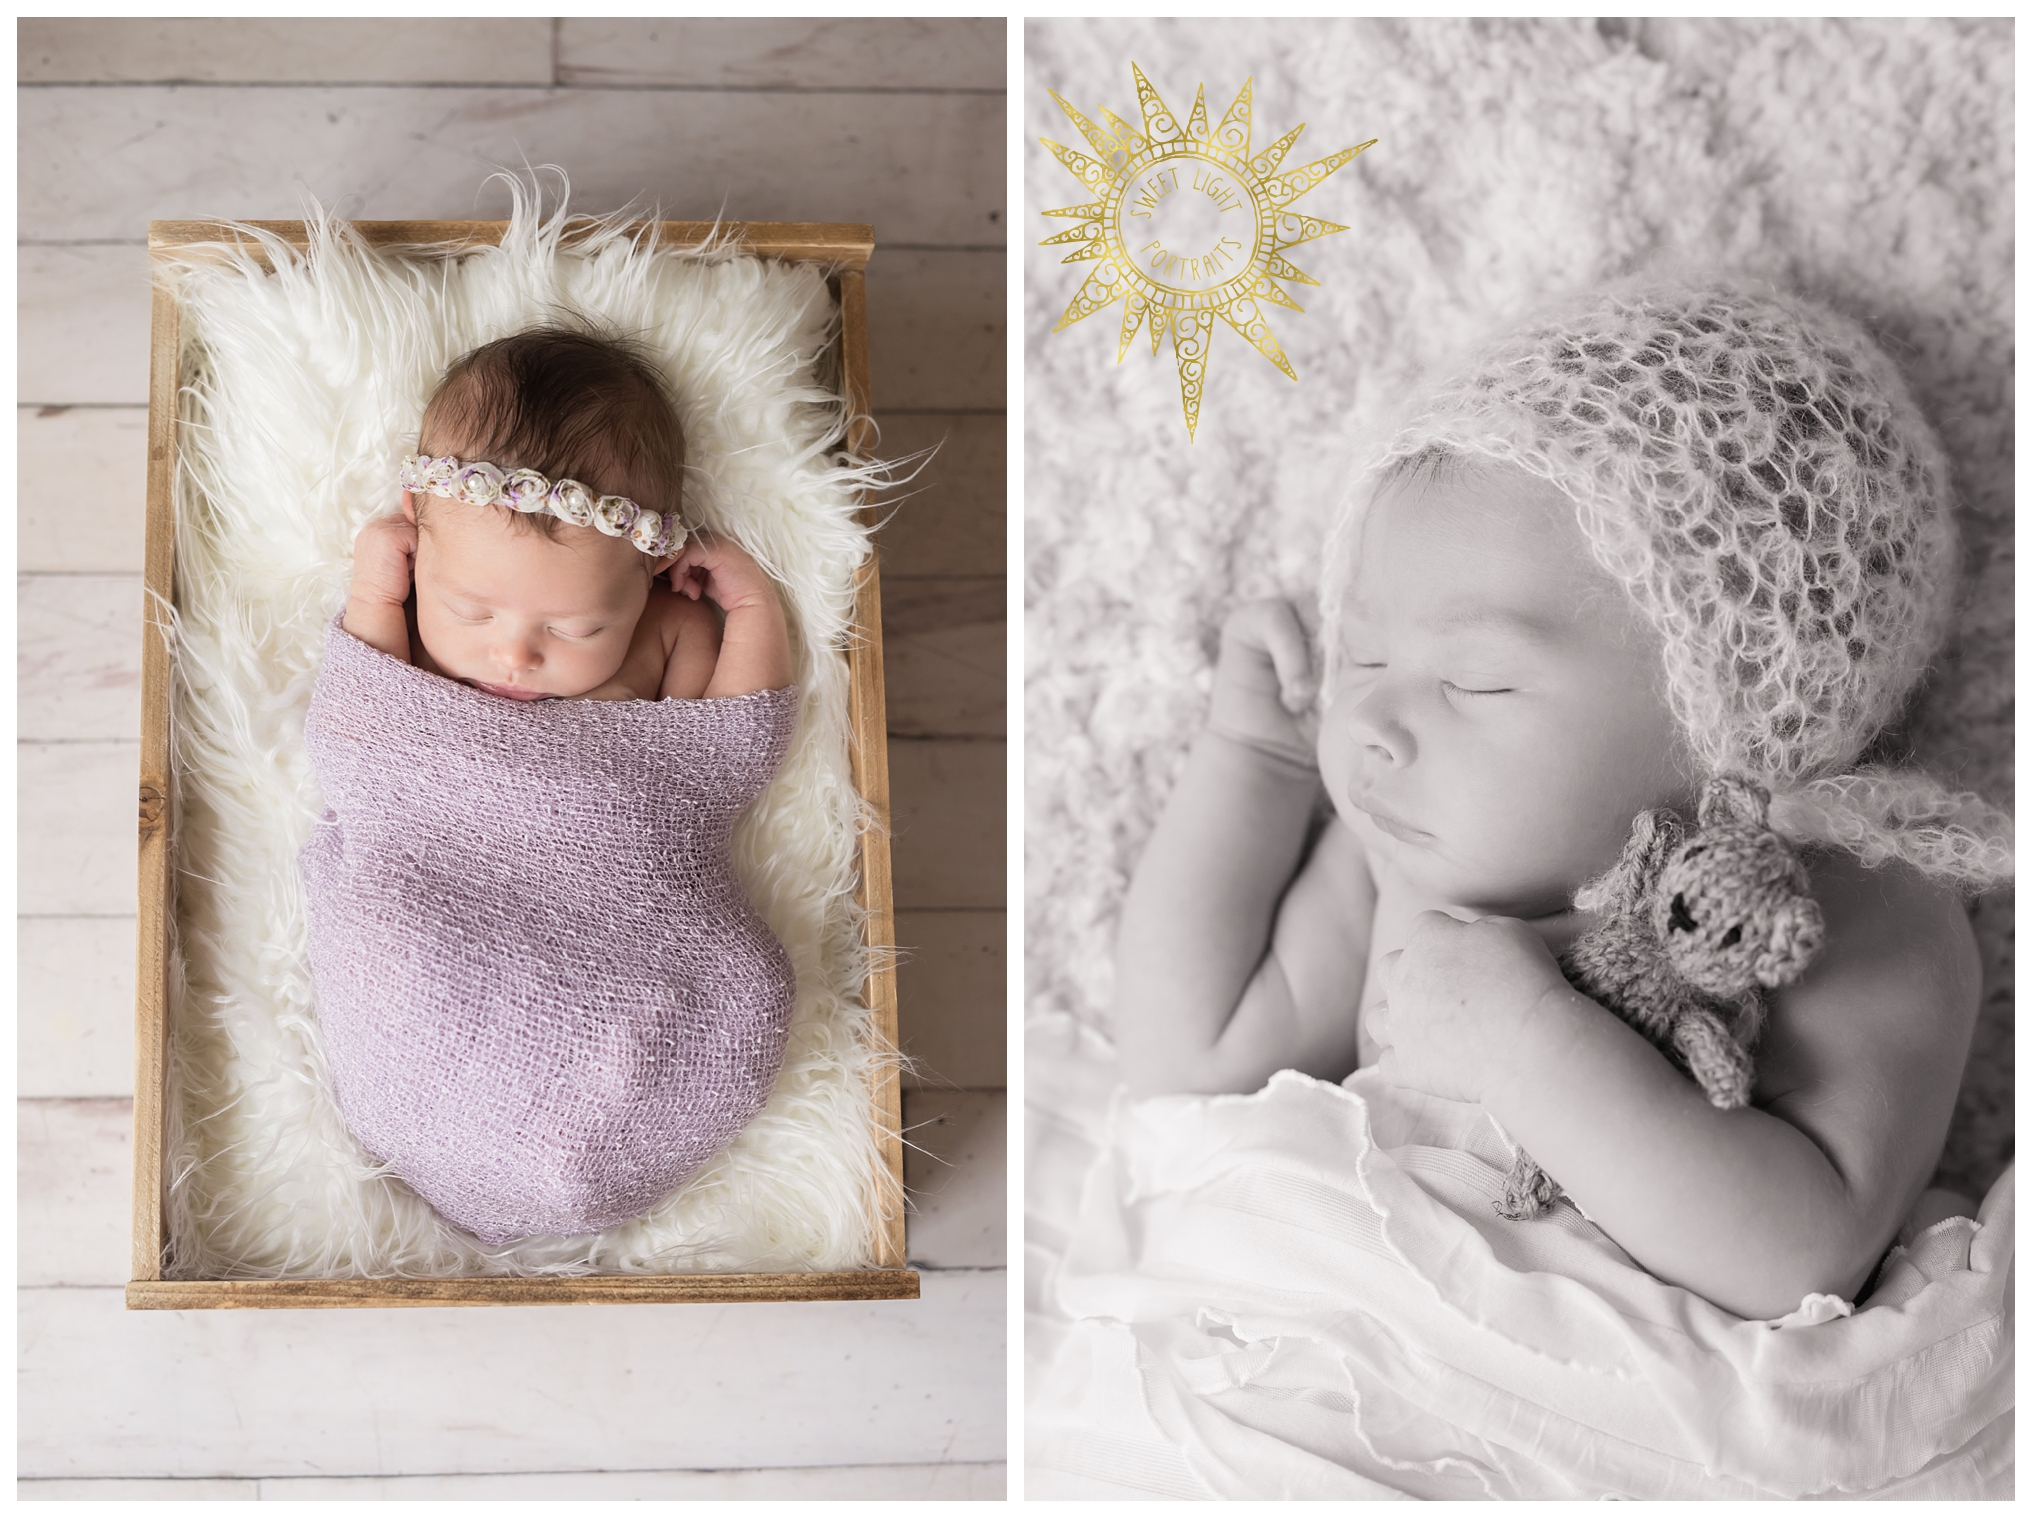 Newborn-Photos-Sweet-Light-Portraits30.jpg